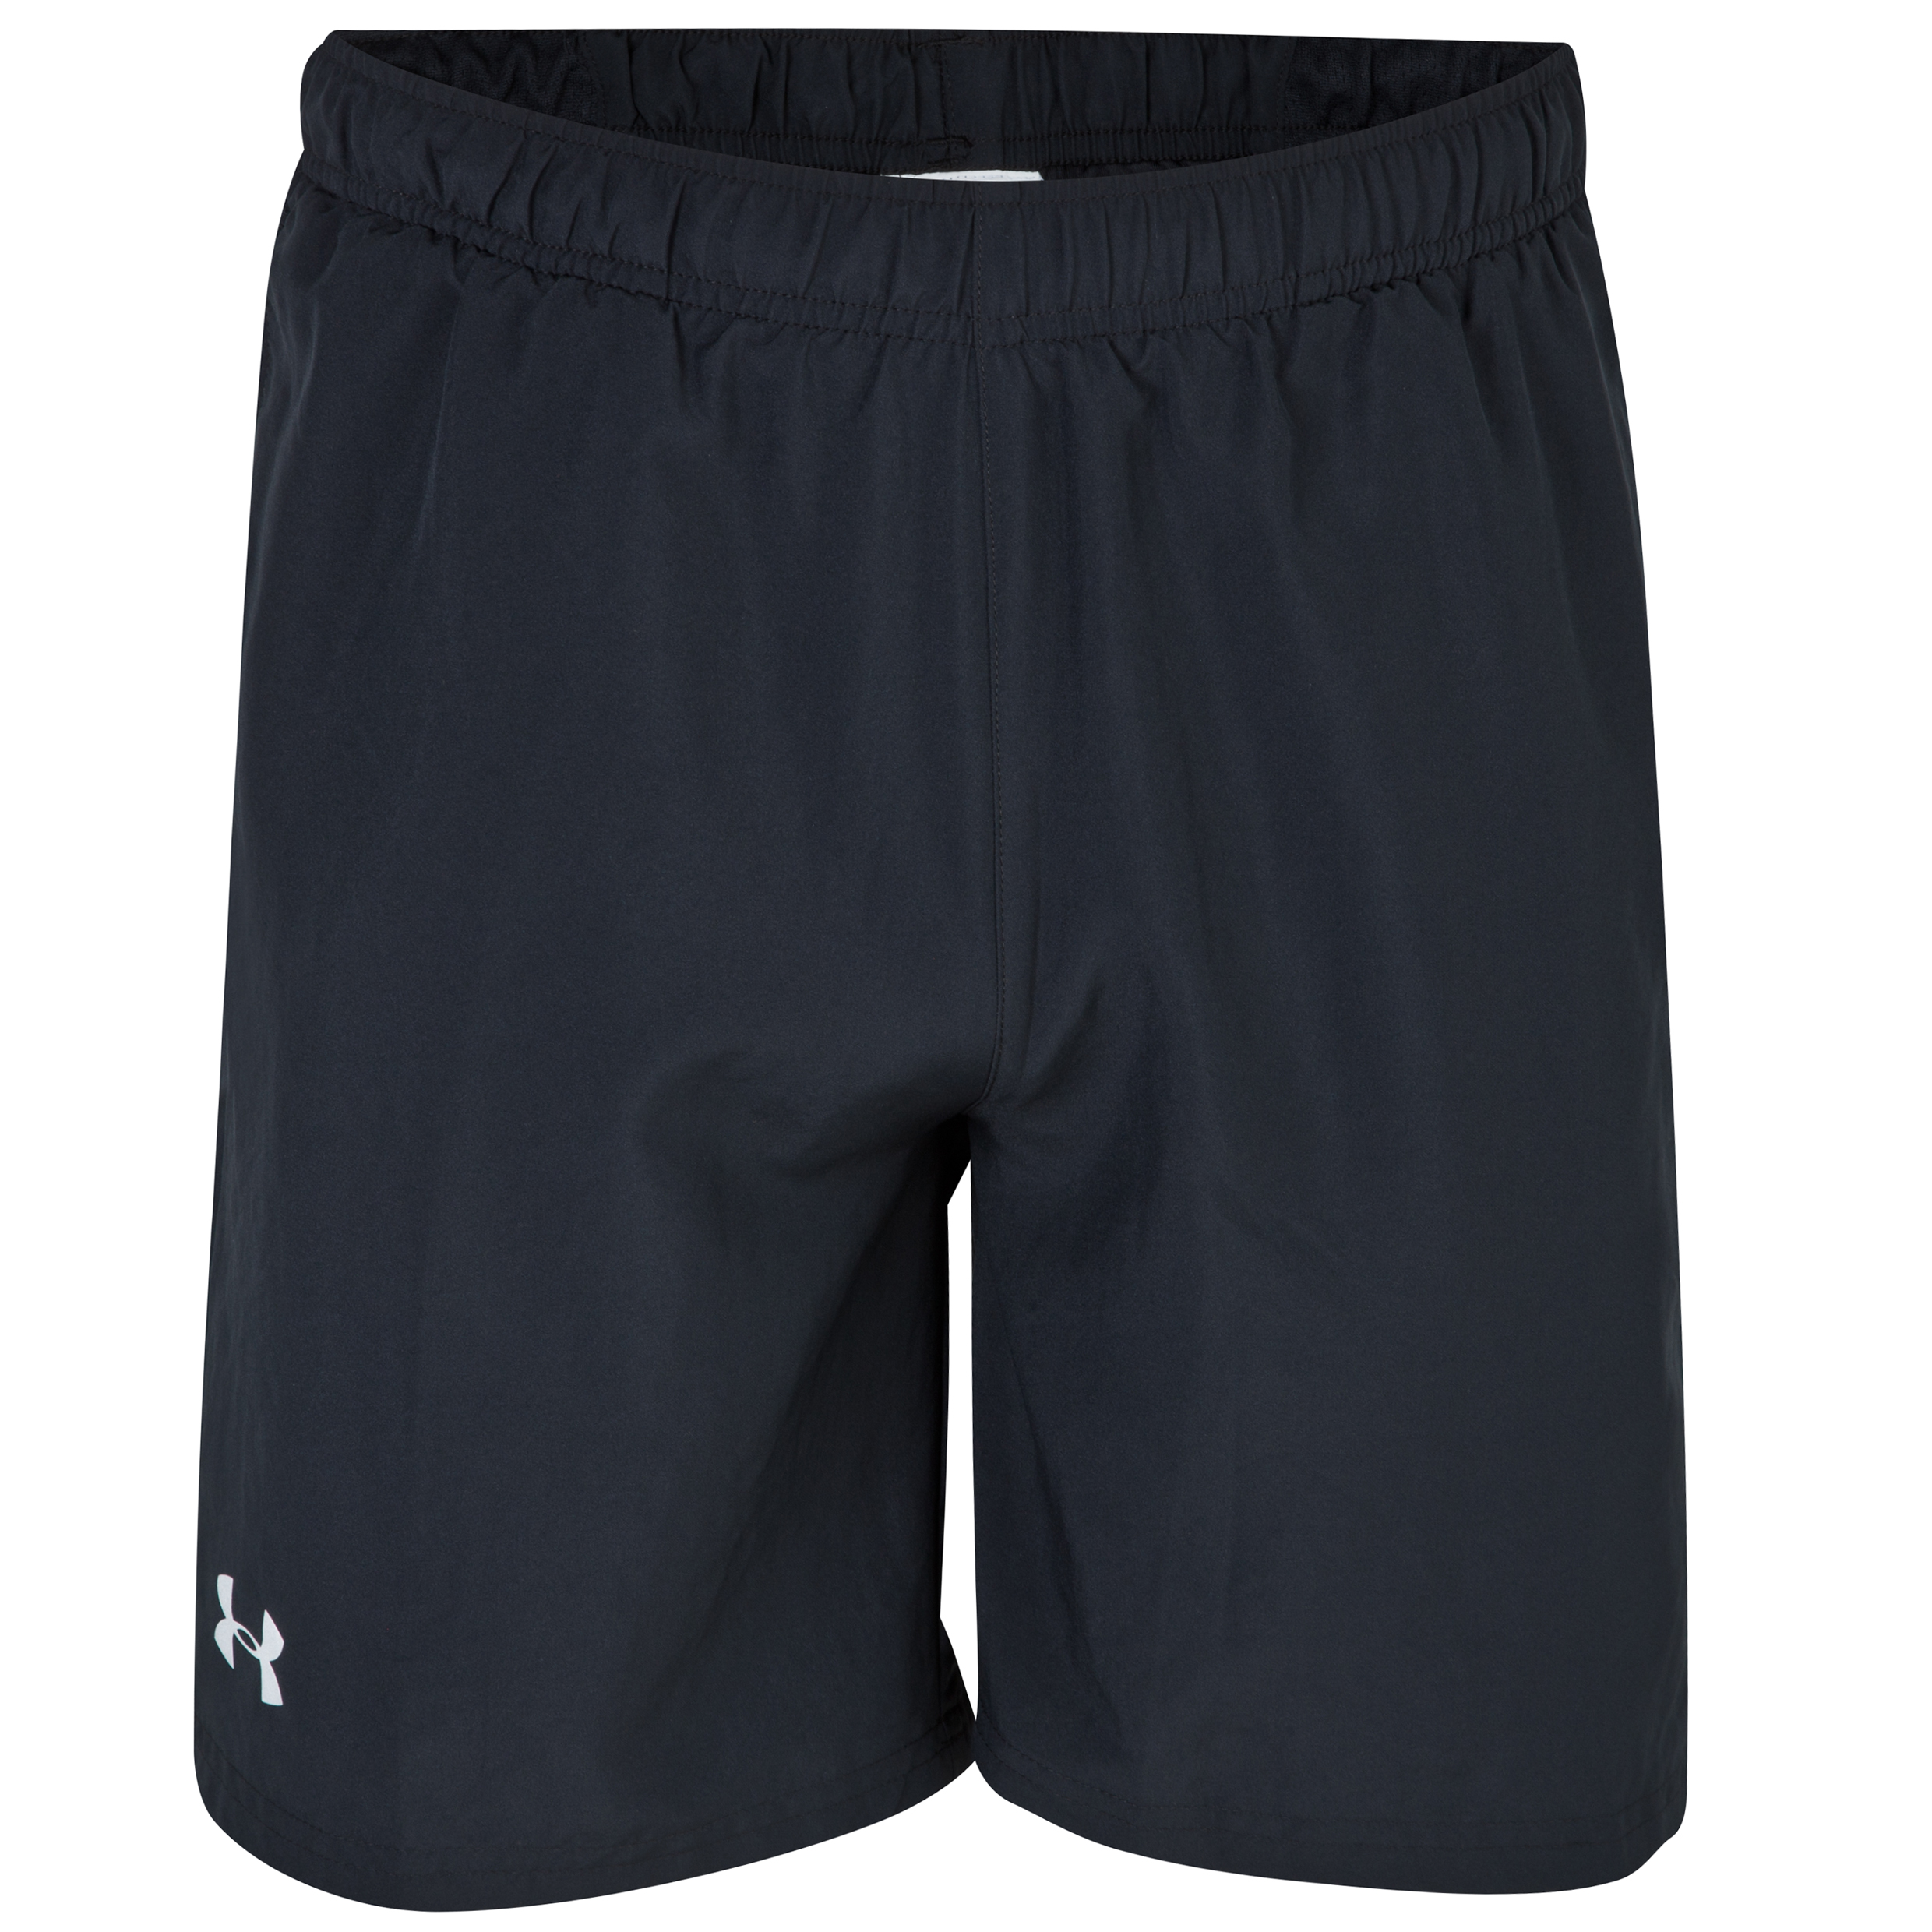 Under Armour Sixth Man 2-in-1 Shorts Black